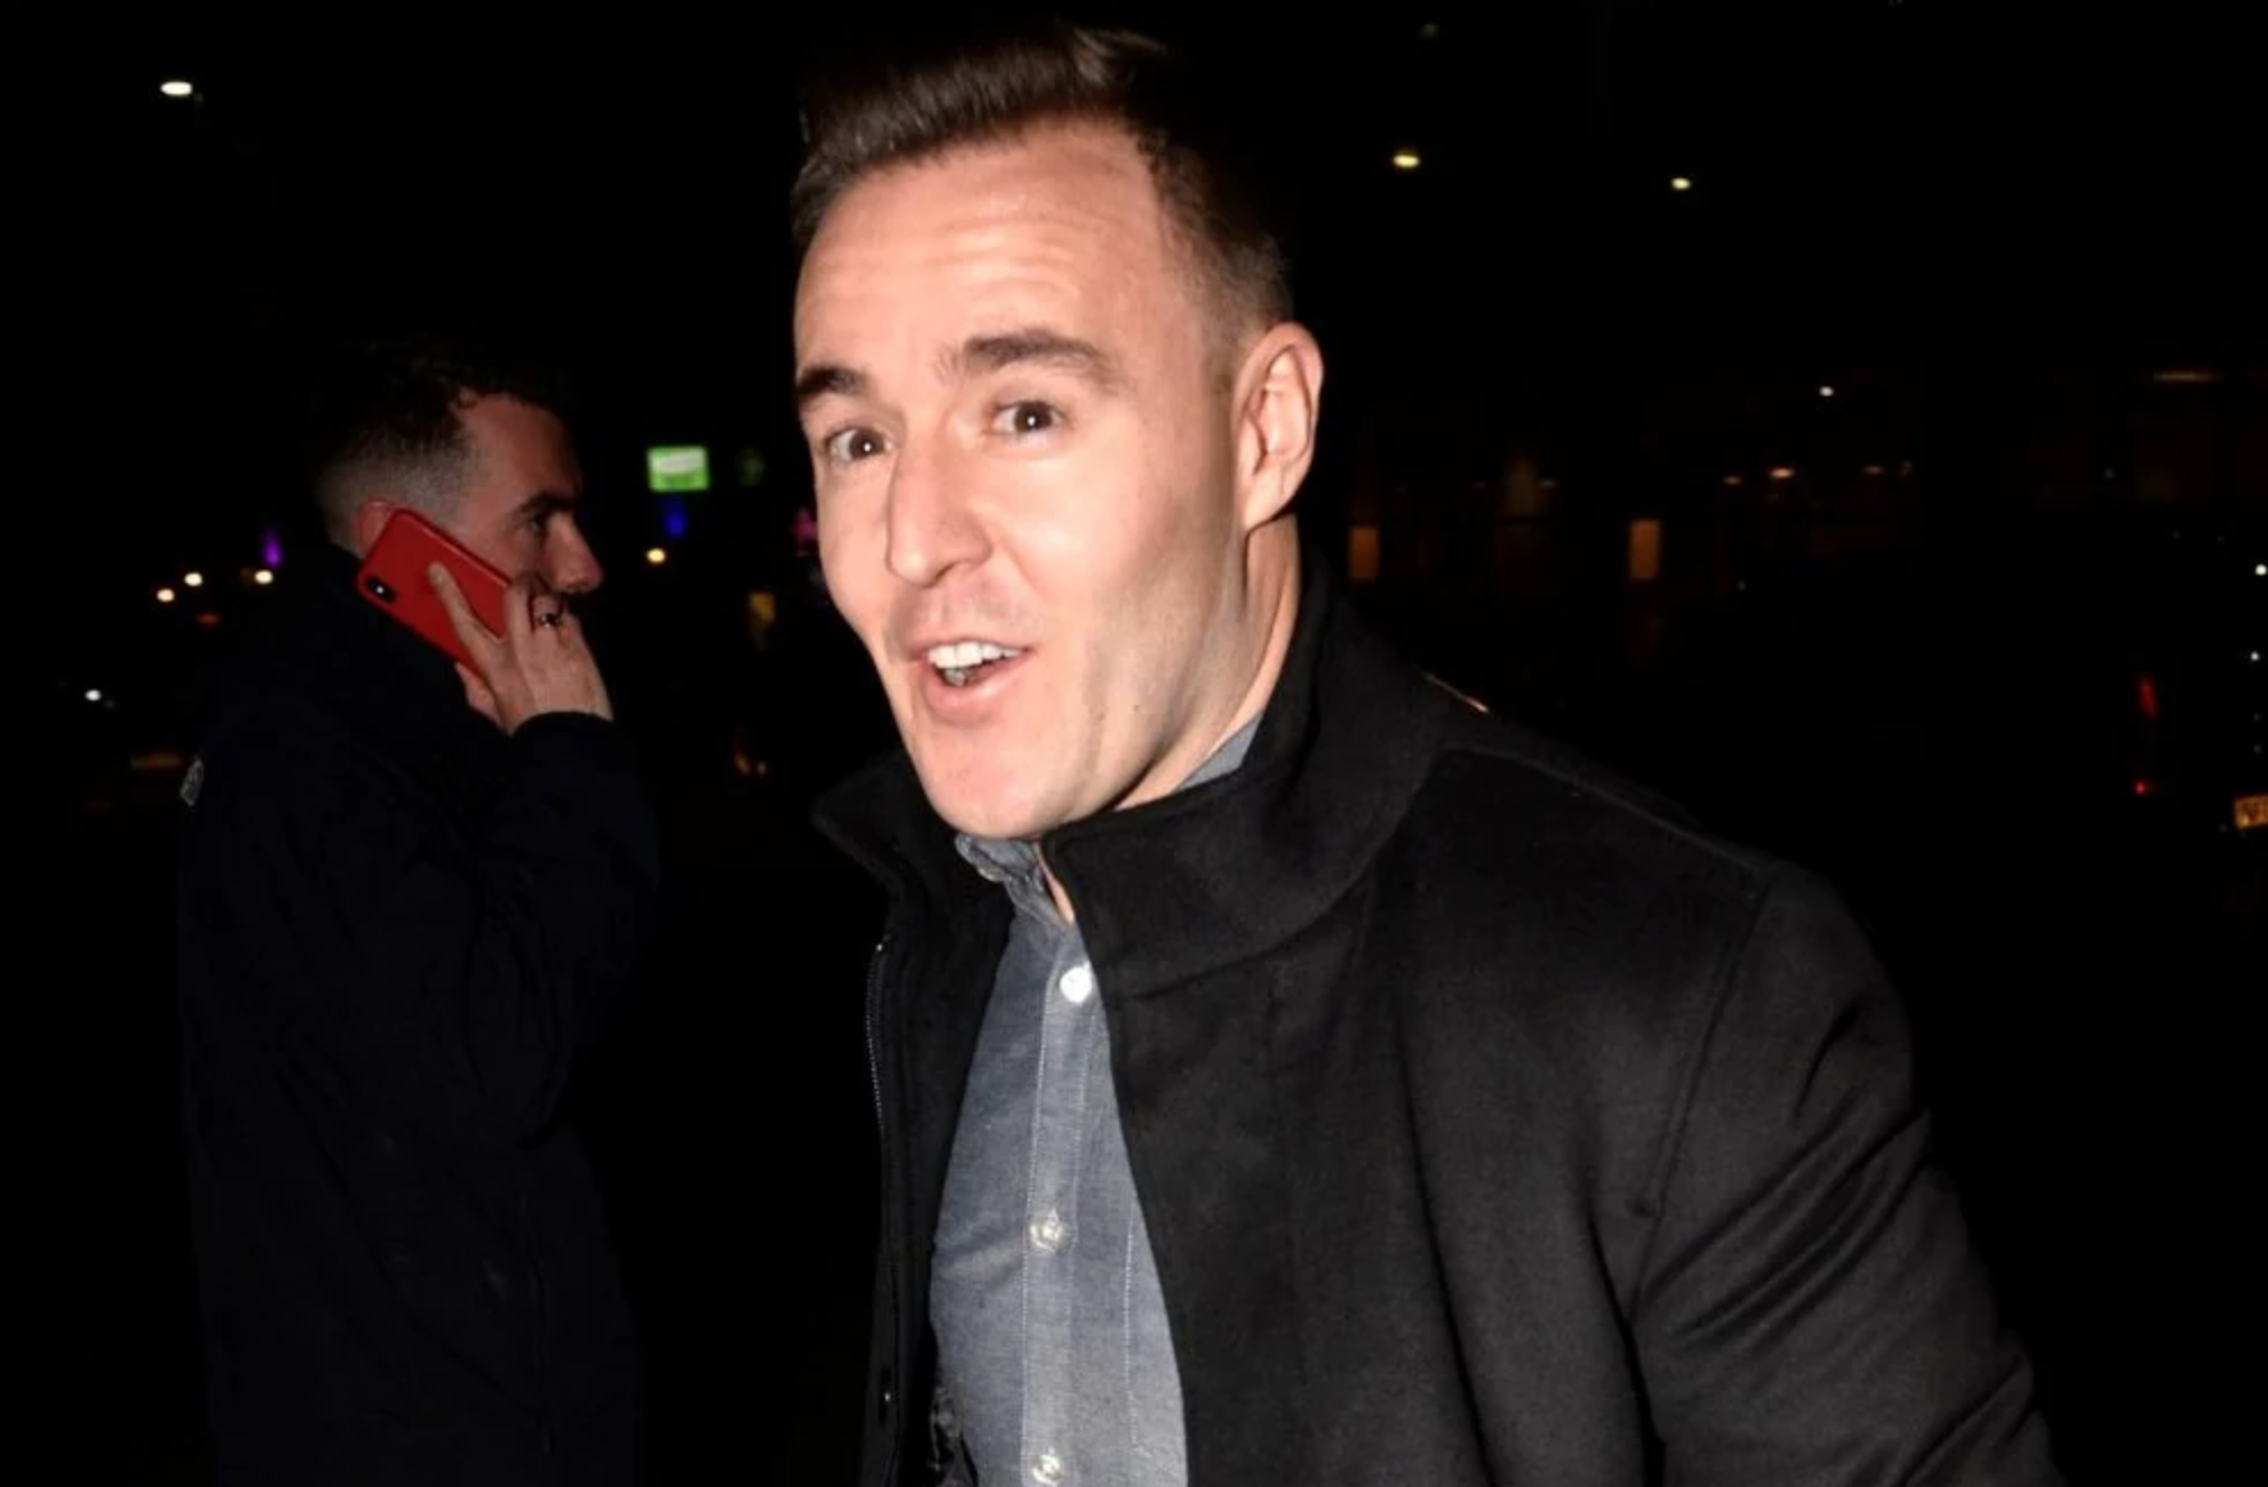 Alan Halsall lifts fans' spirits with sweet daddy and daughter pic